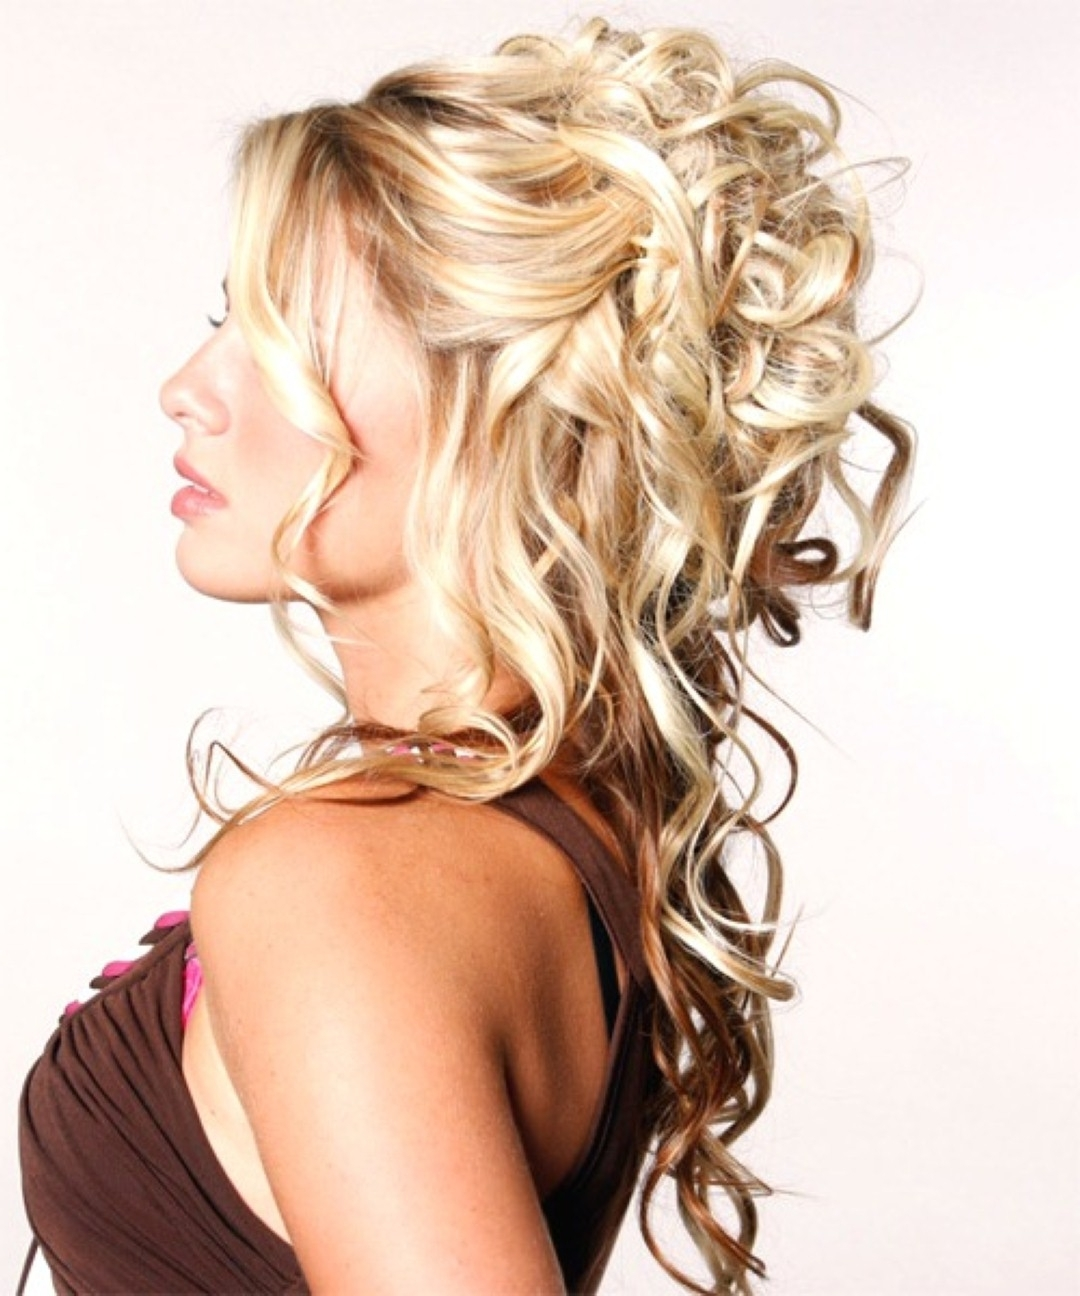 Prom Hairstyles For Long Hair | Hair Styles | Pinterest | Prom Pertaining To Long Curly Hair Updo Hairstyles (View 10 of 15)